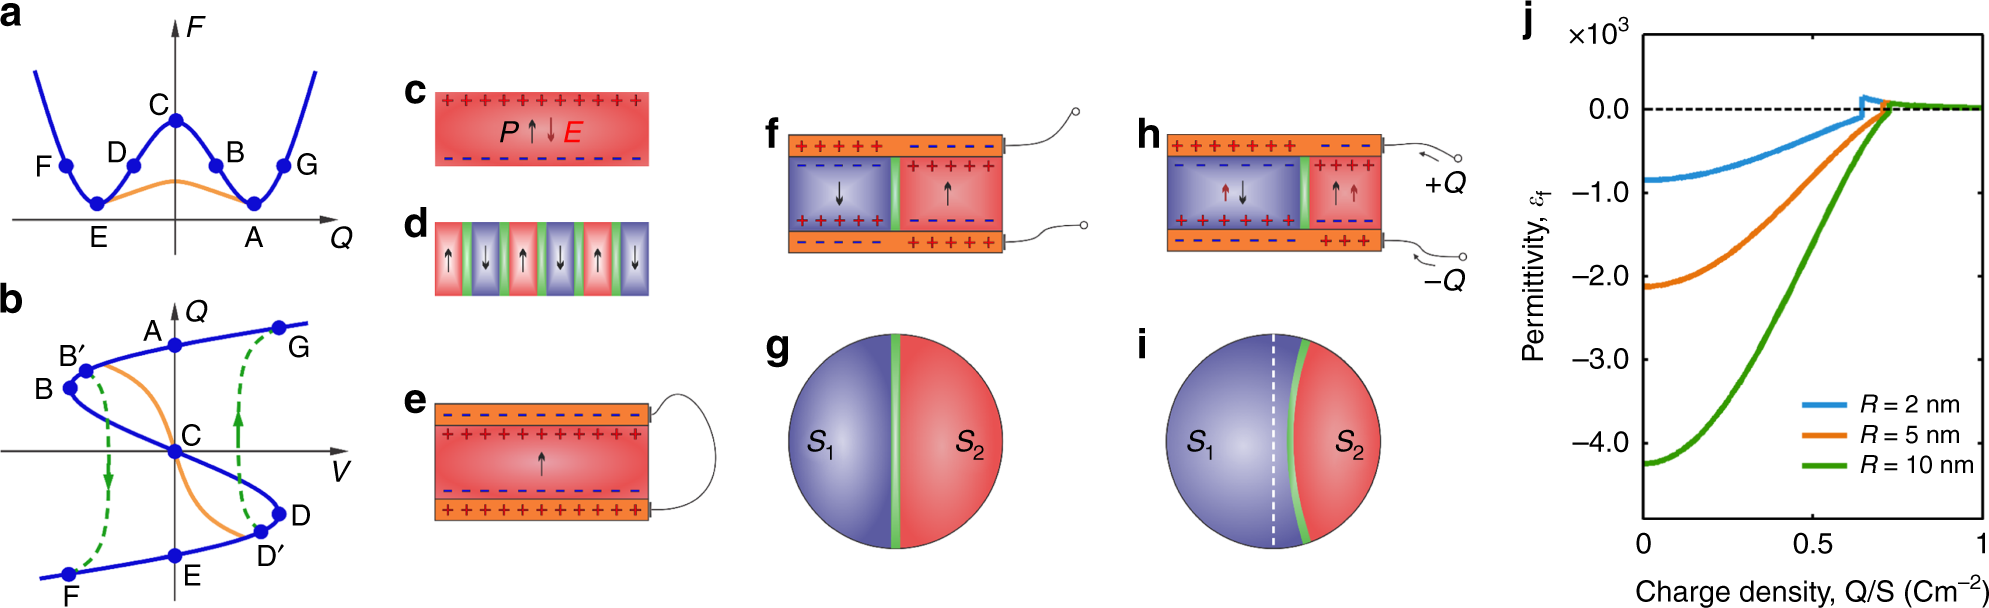 Harnessing ferroelectric domains for negative capacitance